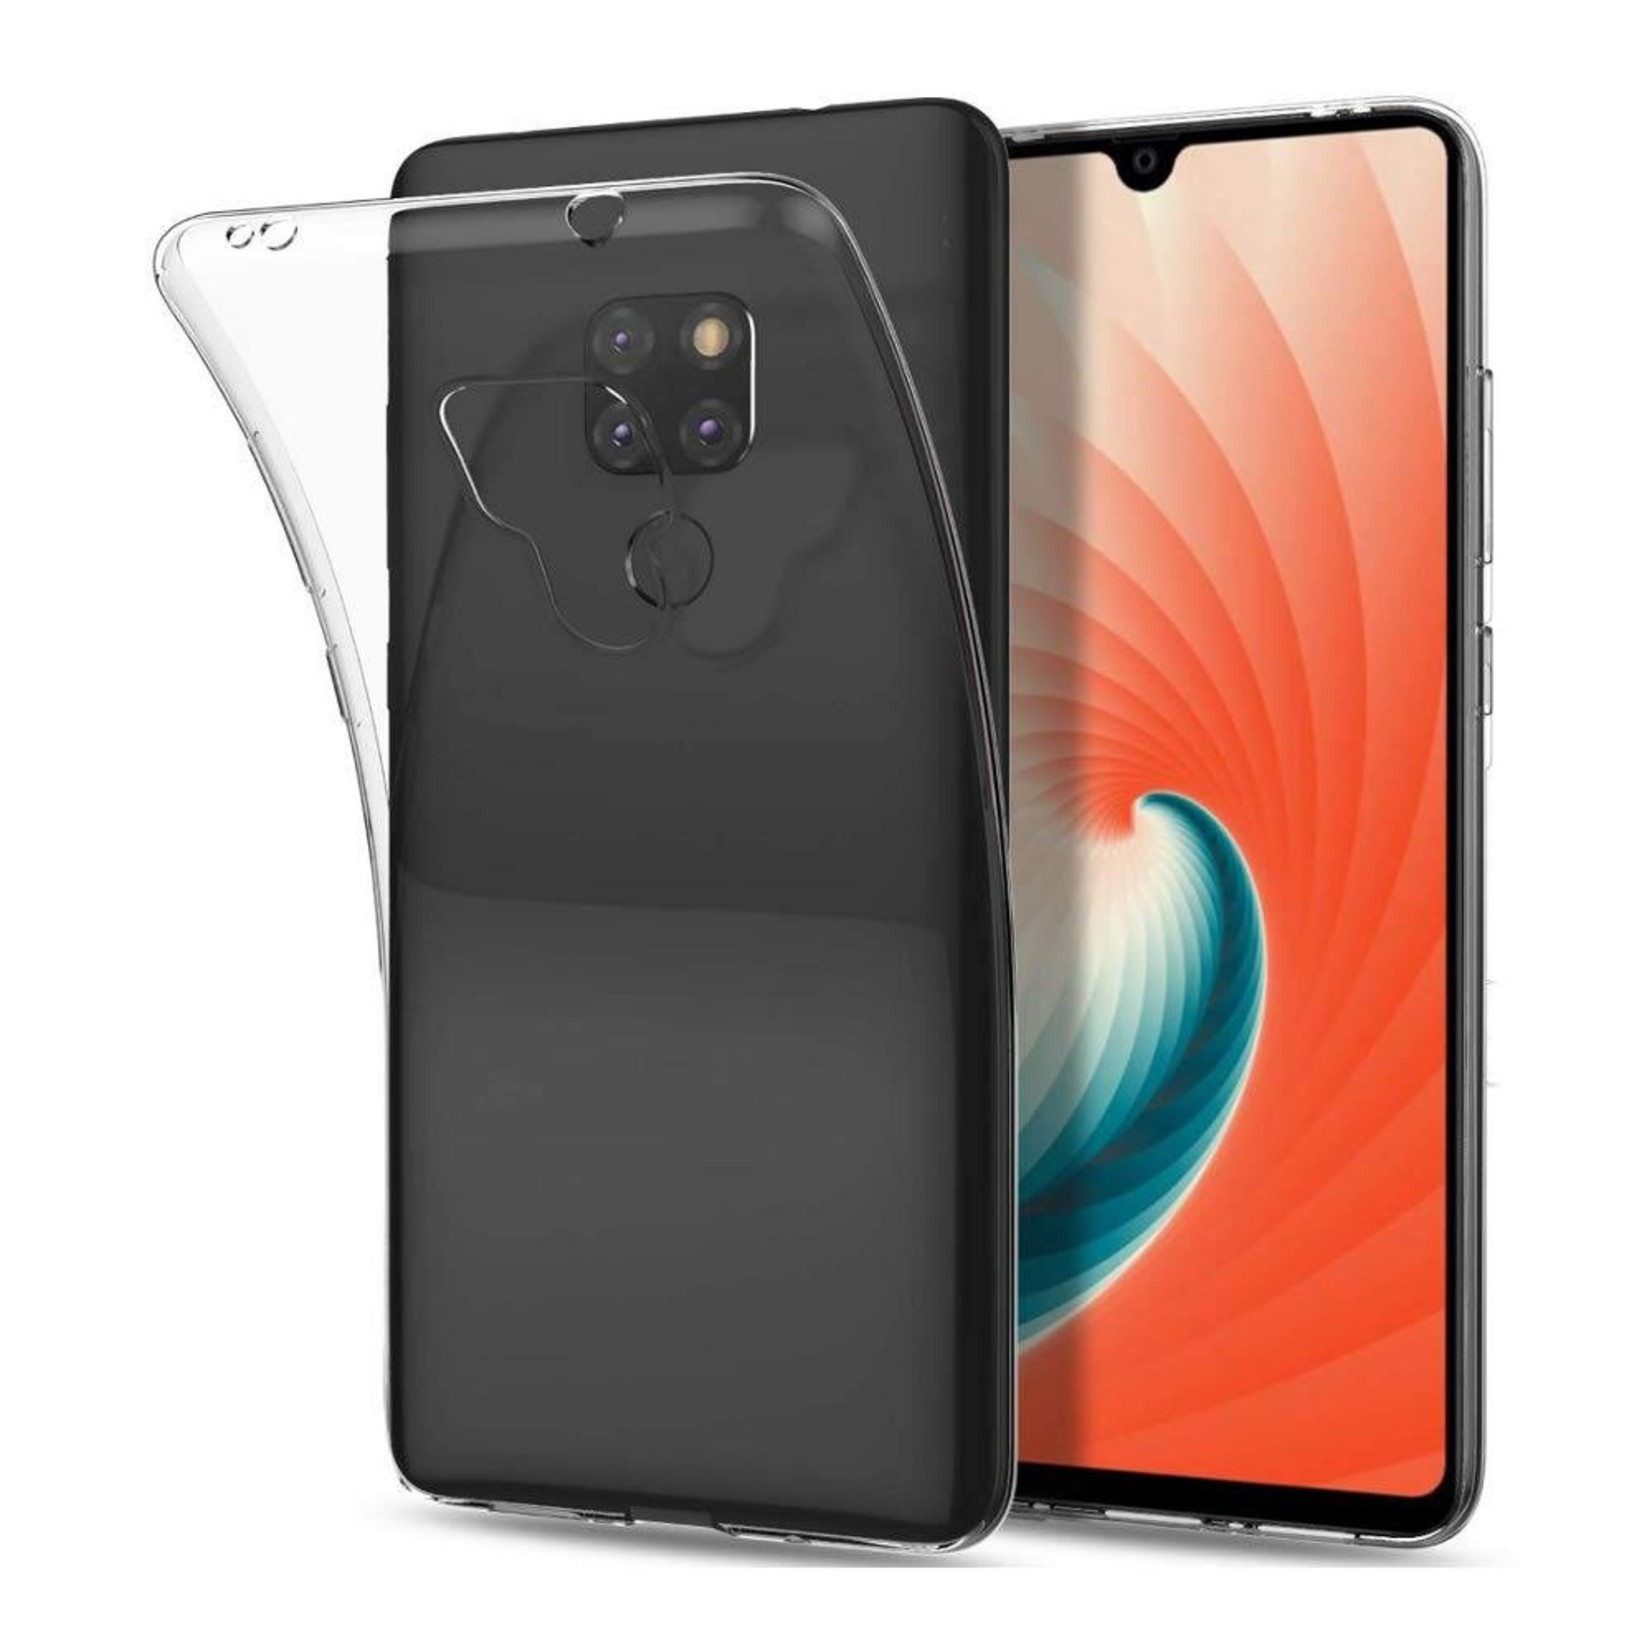 Colorfone Hoesje CoolSkin3T voor Huawei Mate 20 Transparant Wit